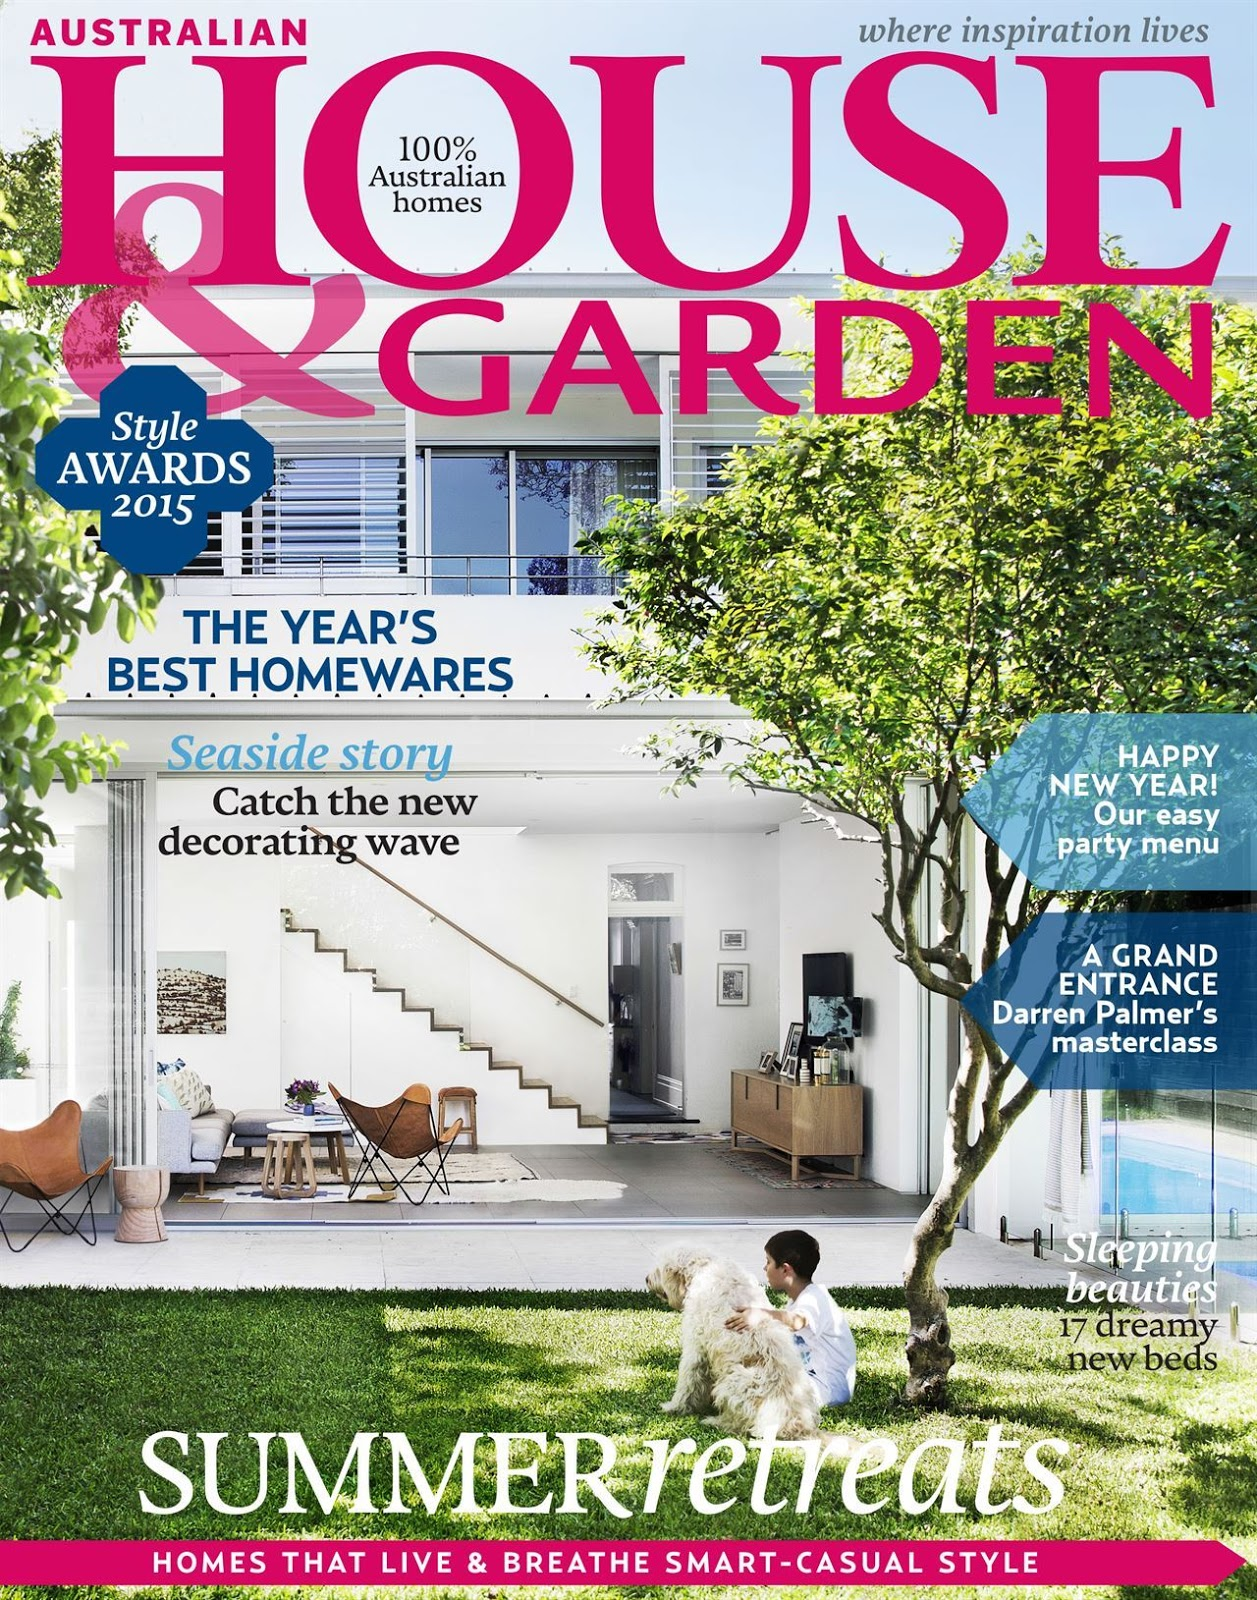 Coastal Style: My House Features in Australian House & Garden